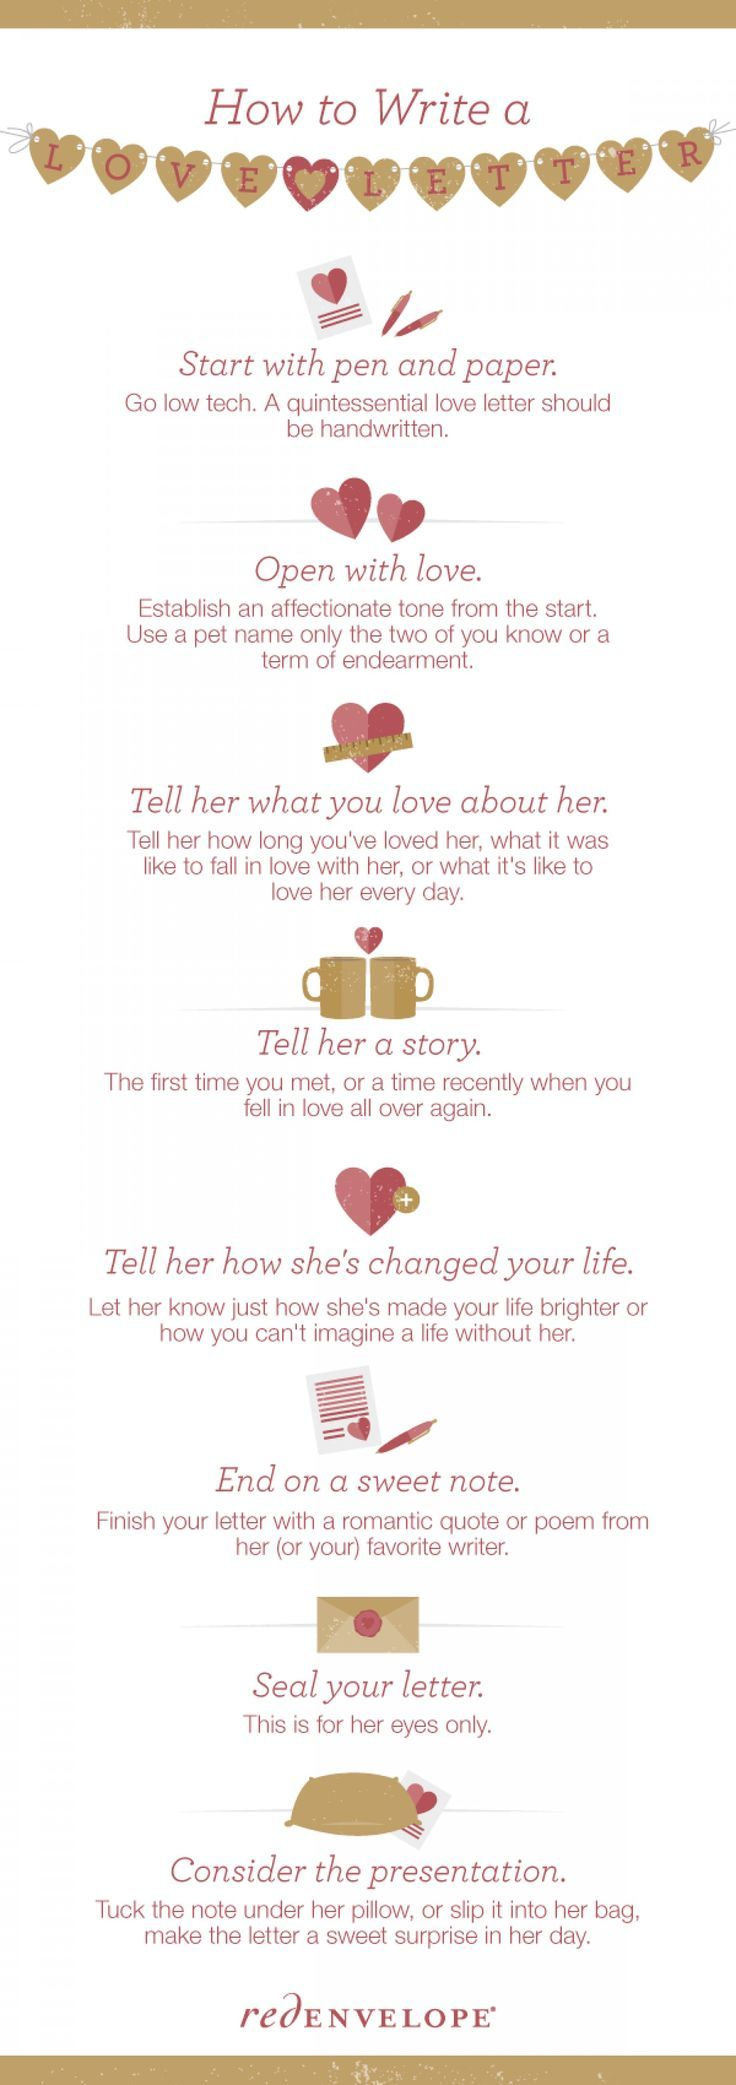 How to write a love letter infographic loveletter howto words how to write a love letter infographic loveletter howto spiritdancerdesigns Choice Image